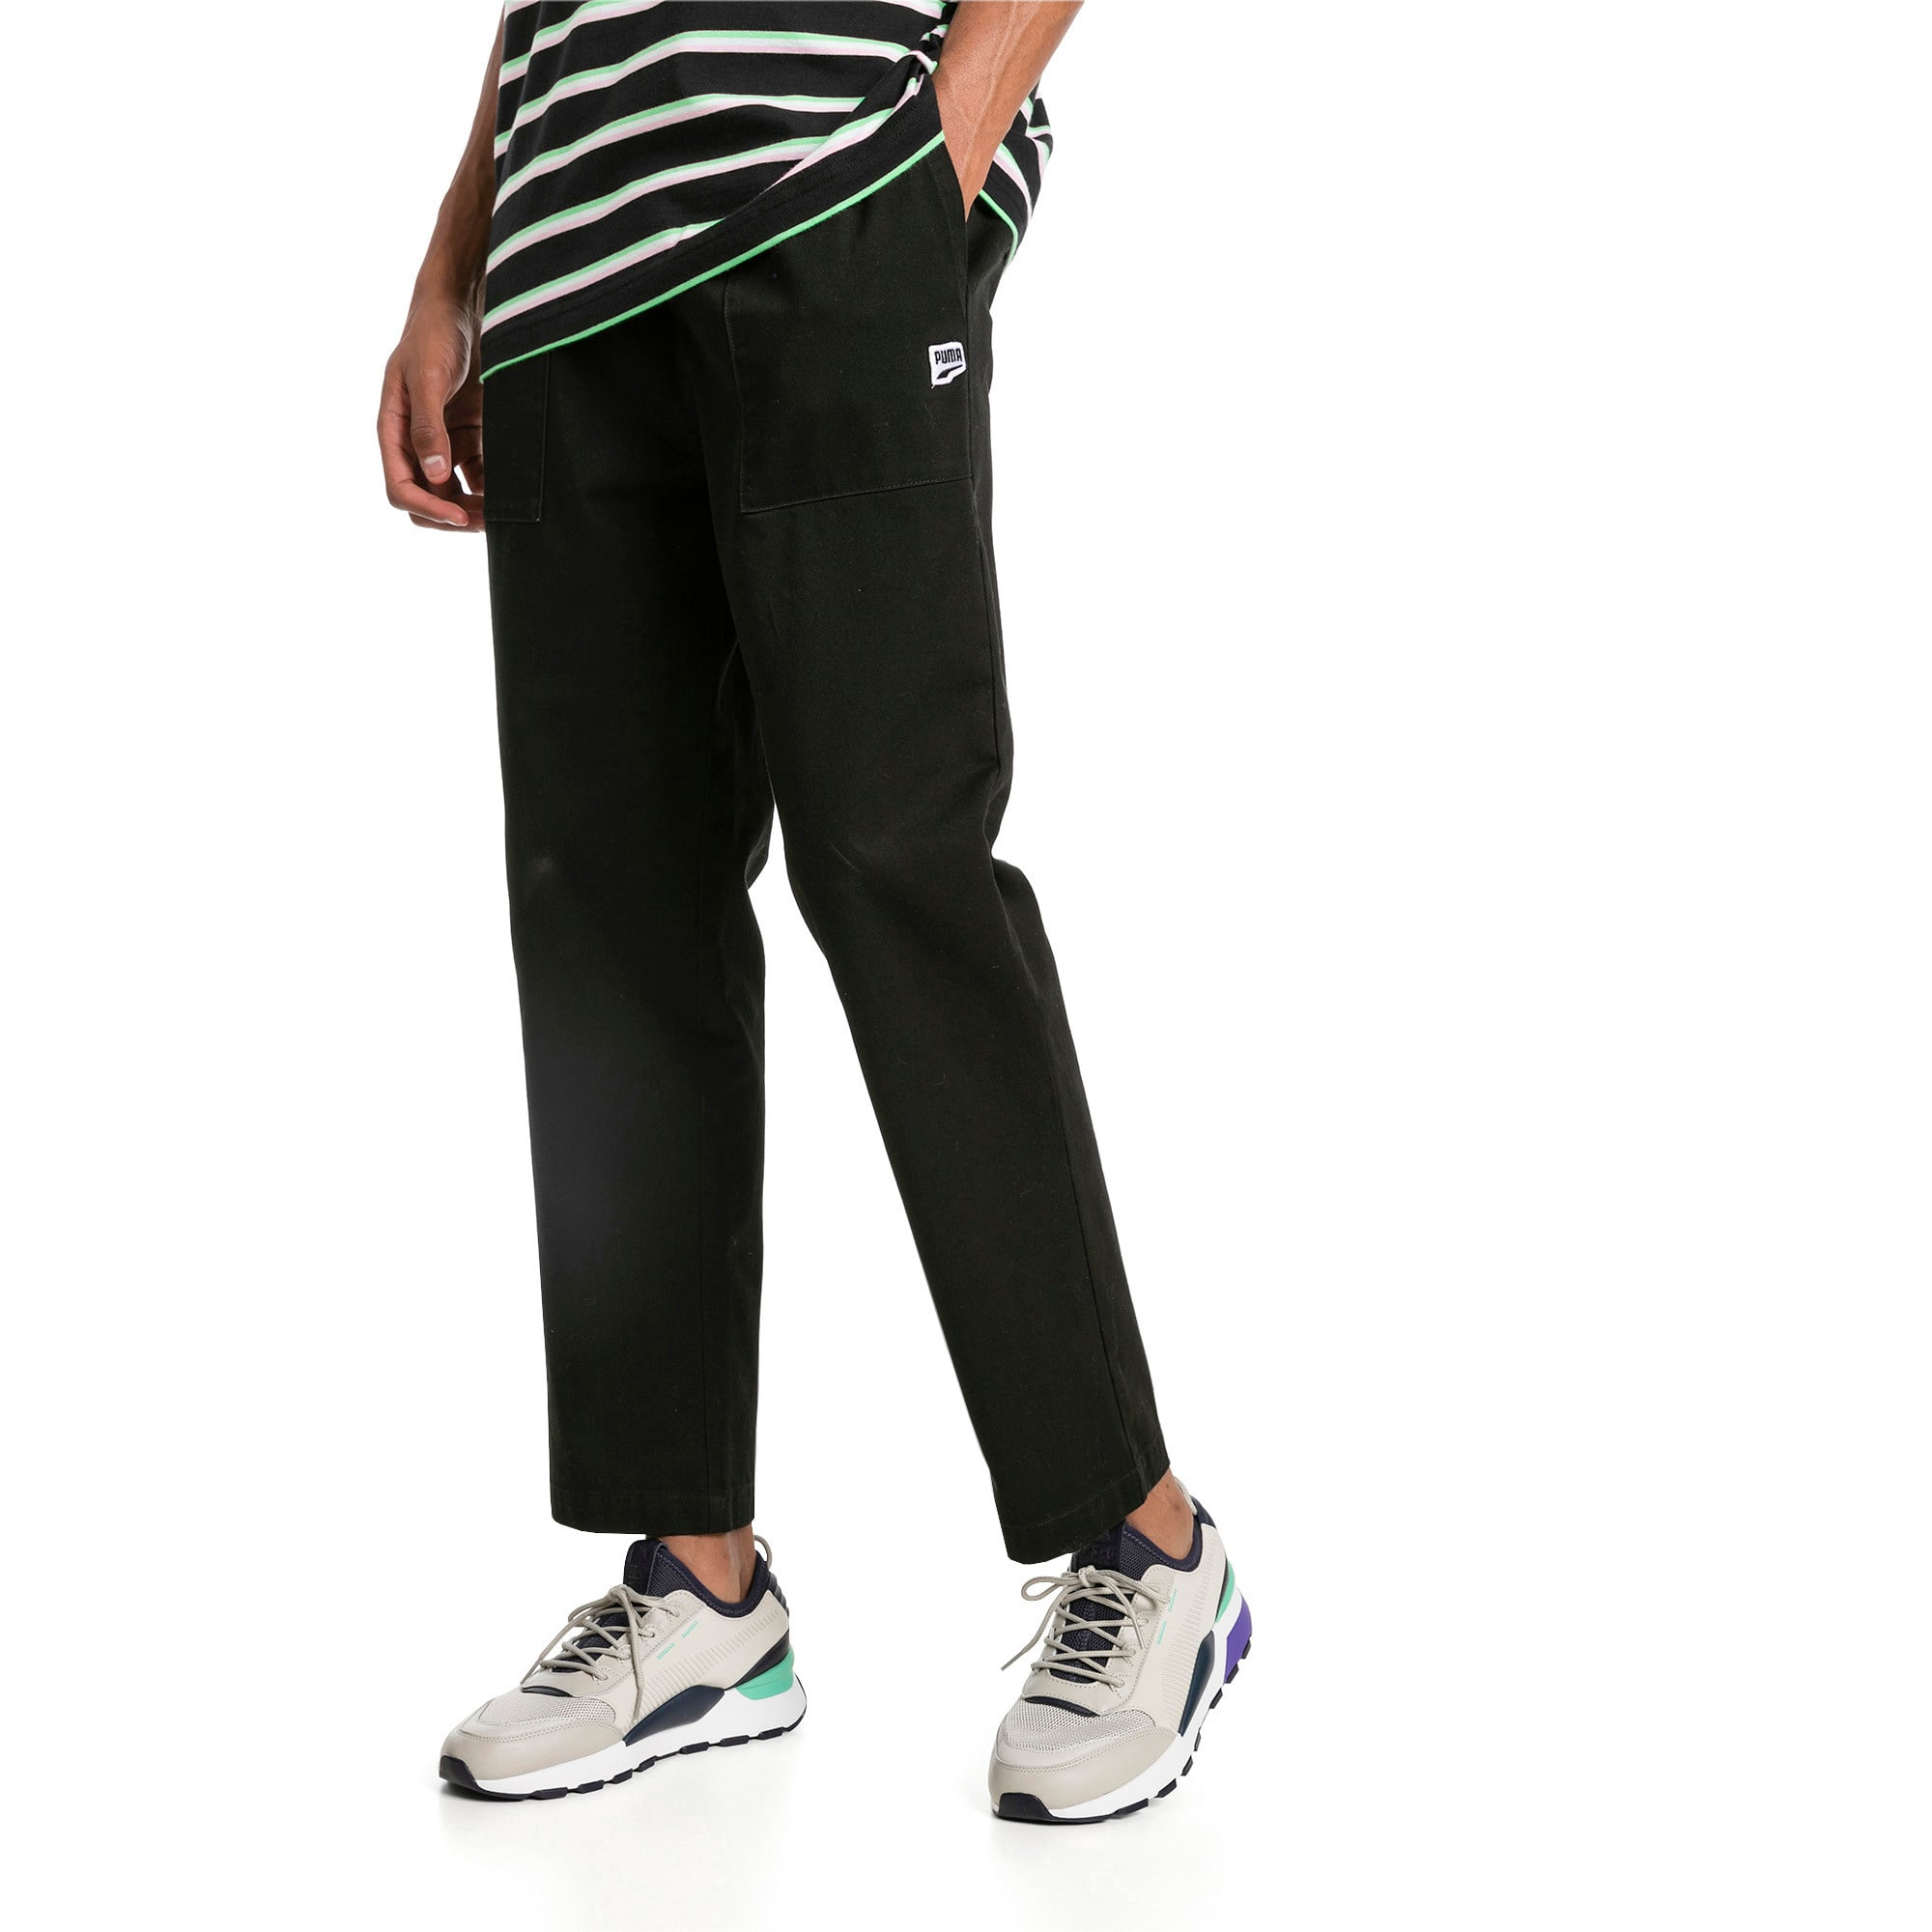 Thumbnail 1 of Downtown Twill Knitted Men's Sweatpants, Cotton Black, medium-IND